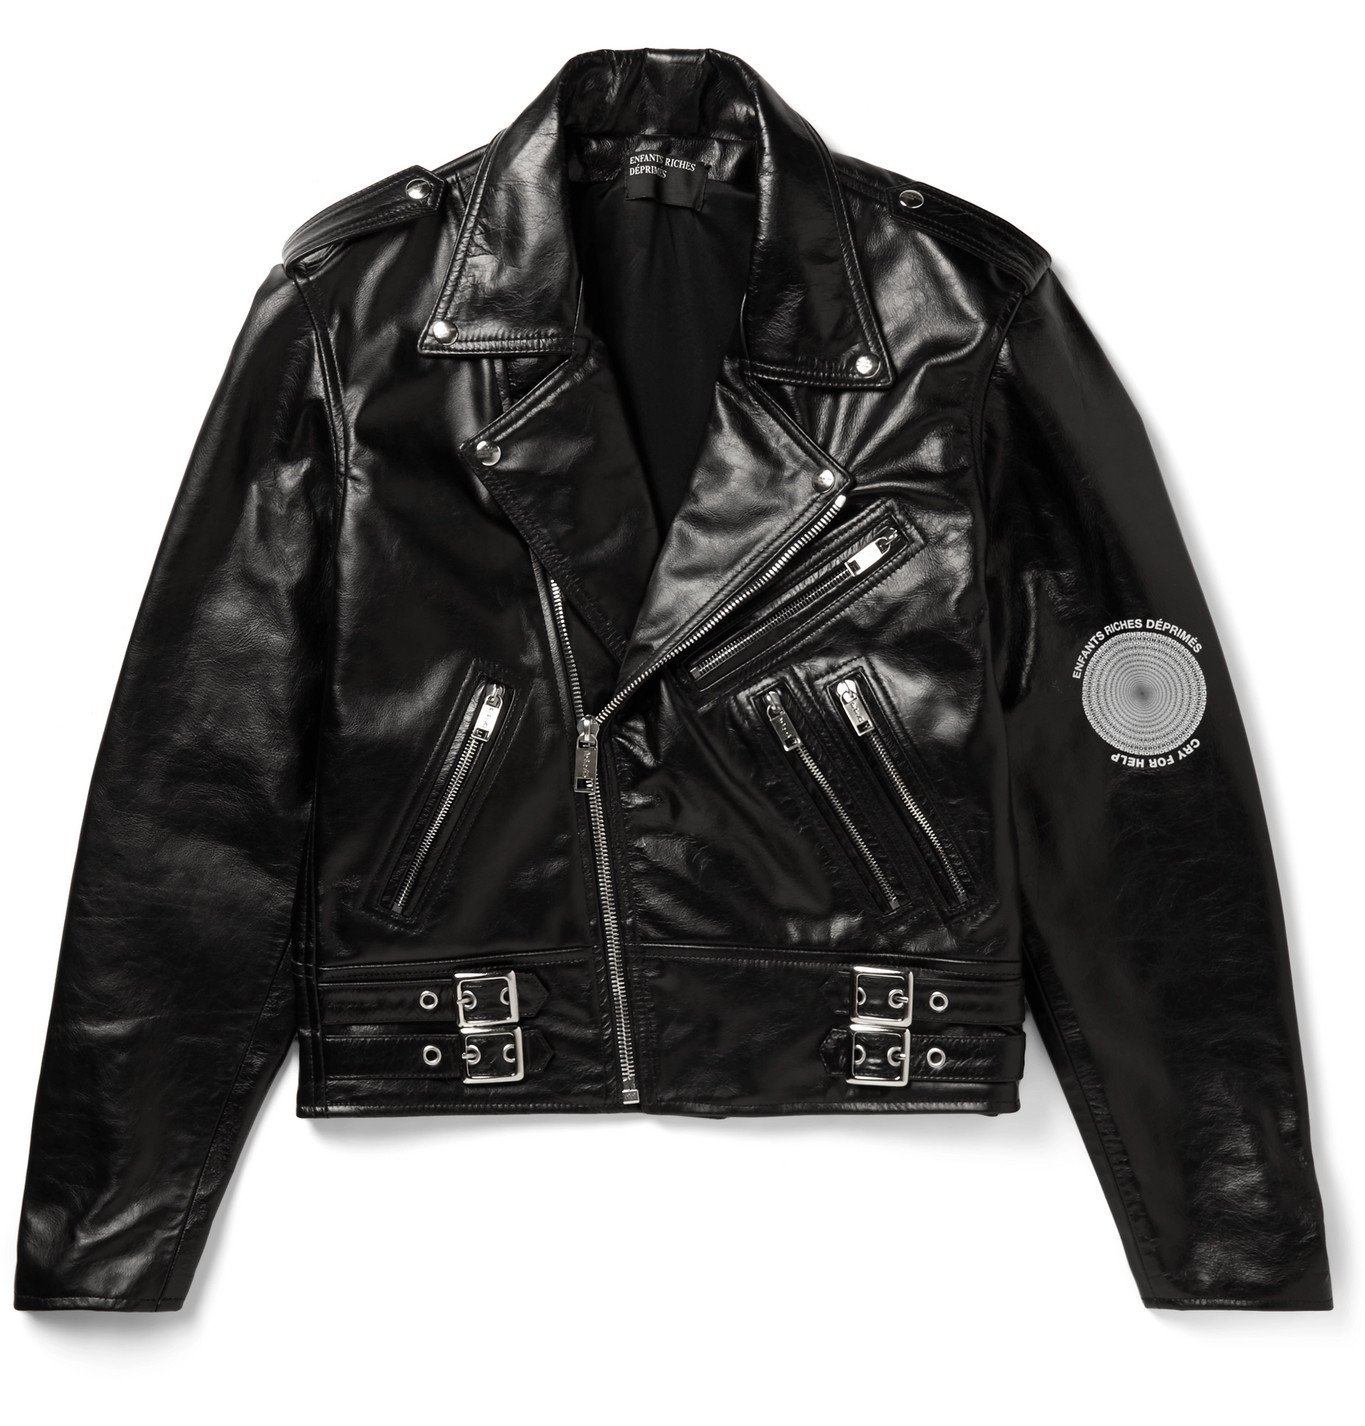 Photo: Enfants Riches Déprimés - Printed Leather Biker Jacket - Black